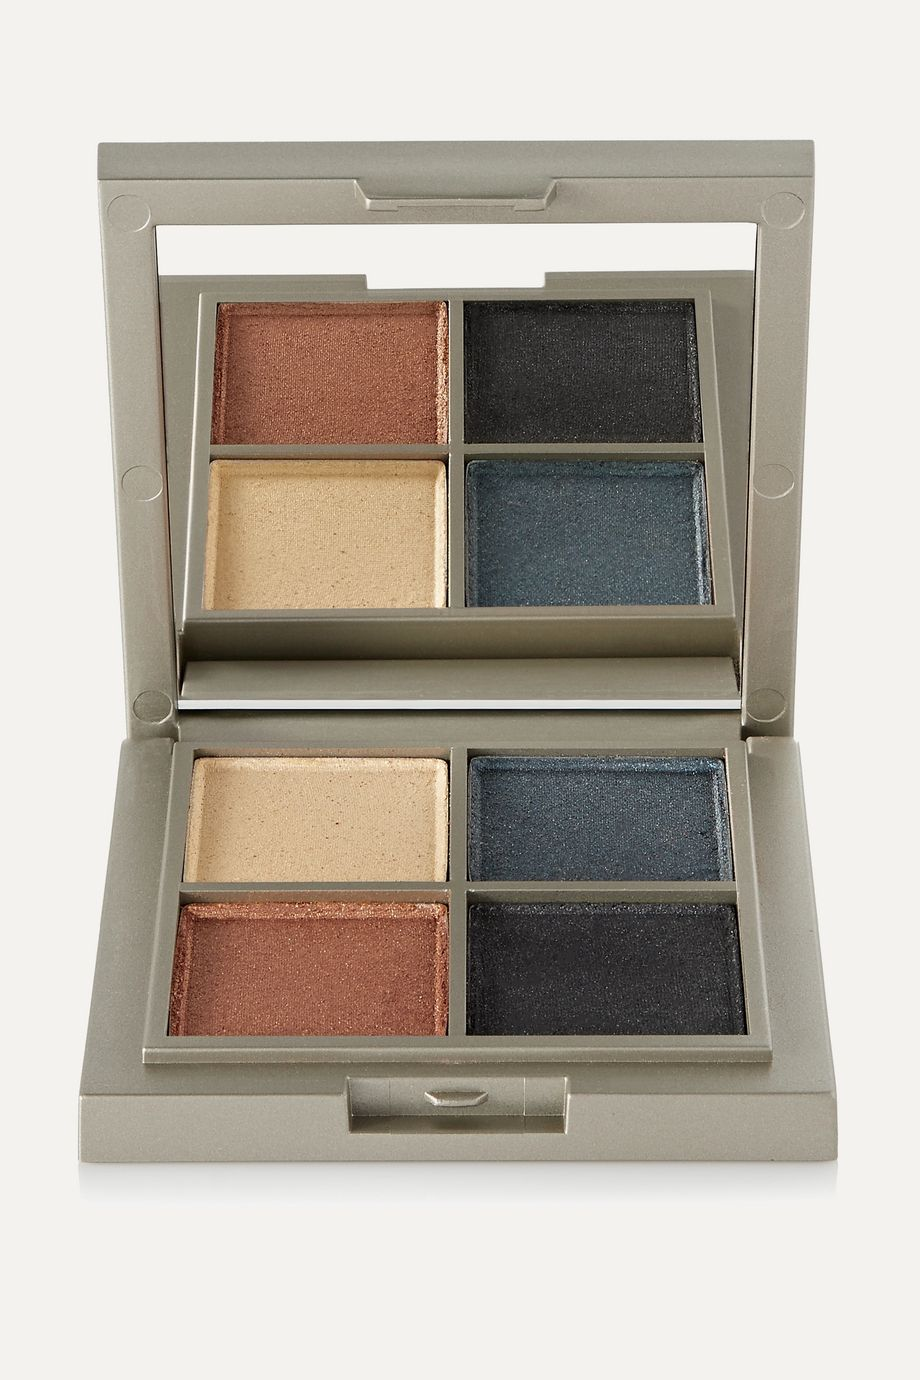 Ilia Essential Shadow Palette - Luna